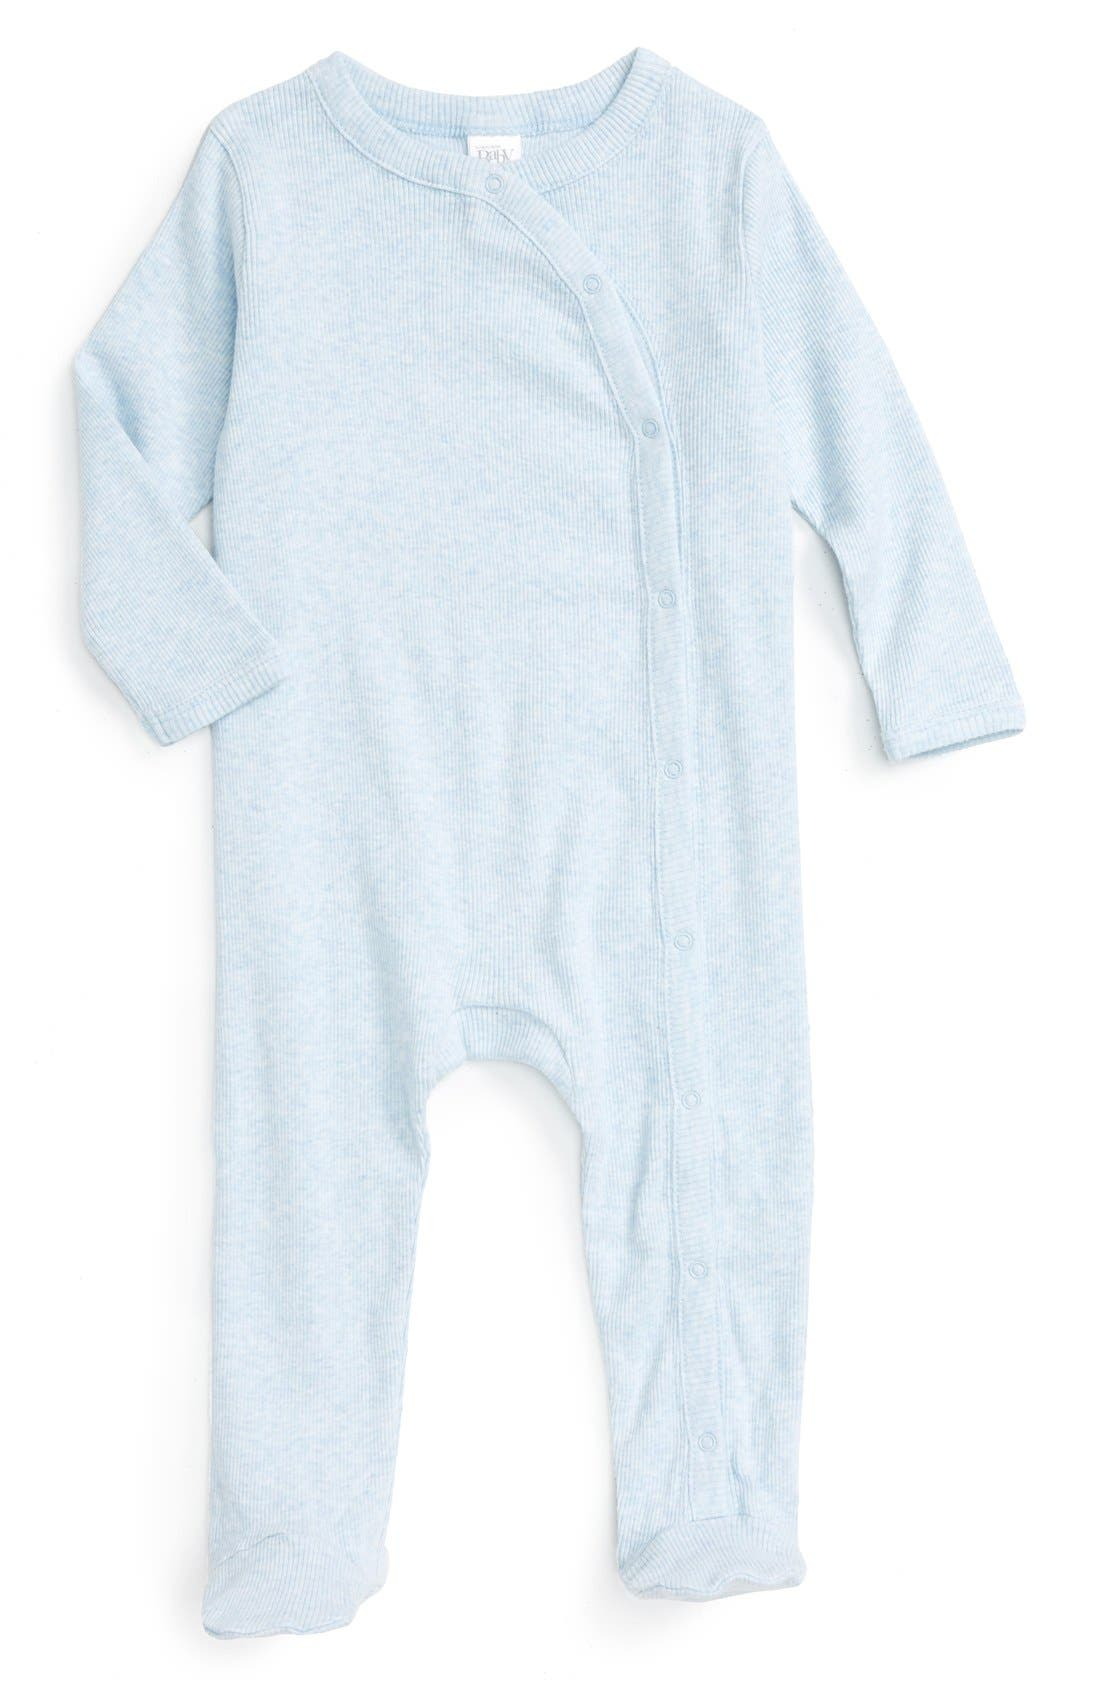 NORDSTROM BABY, Rib Knit Footie, Main thumbnail 1, color, BLUE PRECIOUS HEATHER